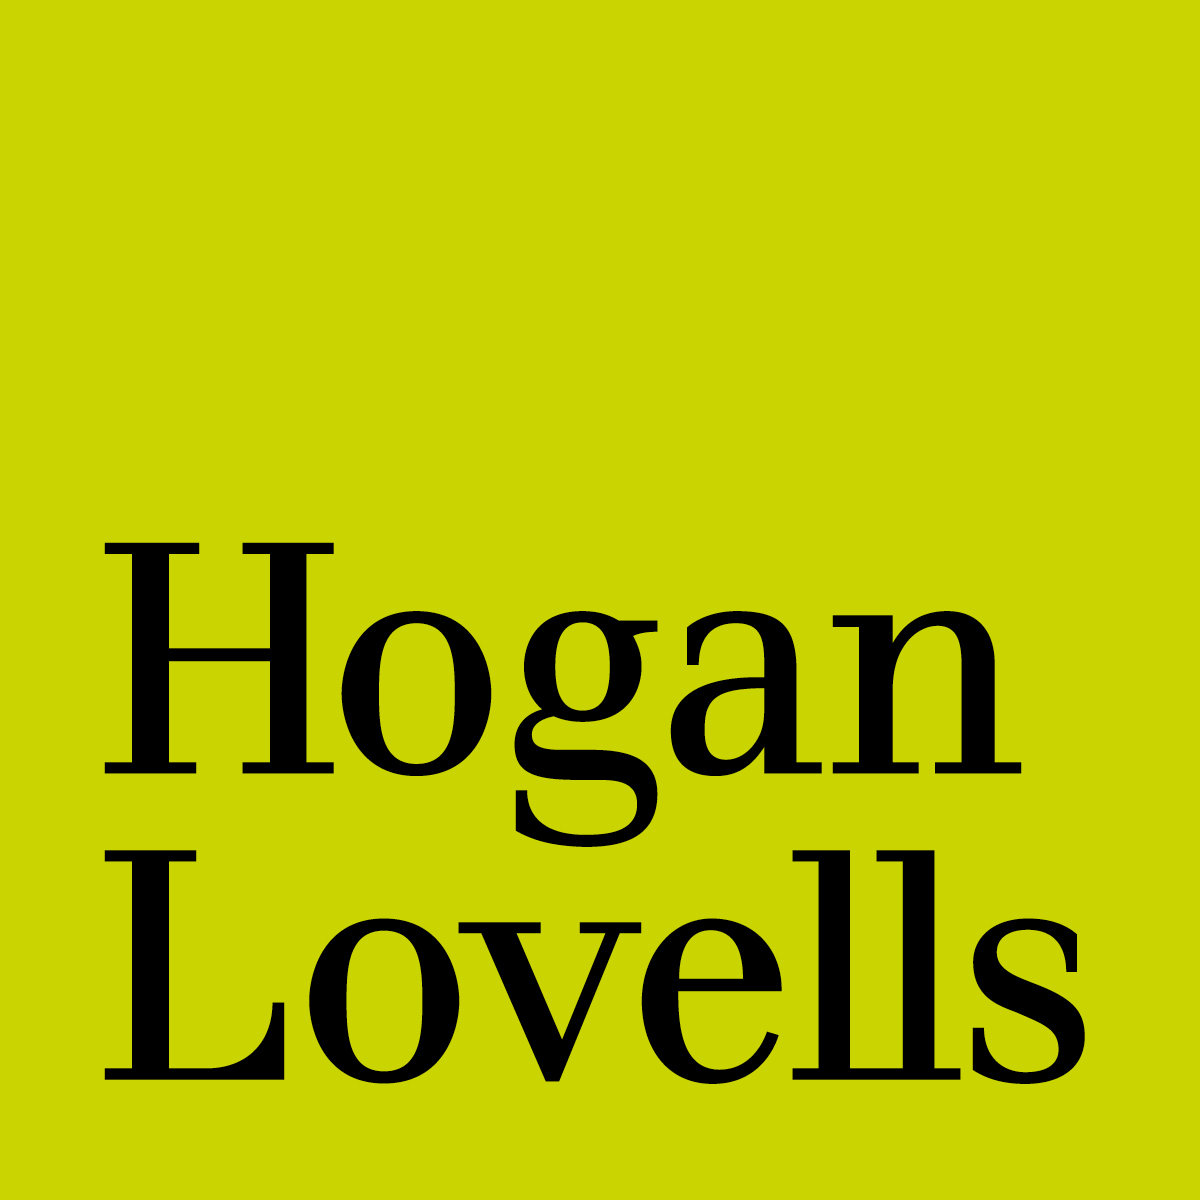 Hogan Lovells | Creative Digital Agency Puntkomma Nijmegen